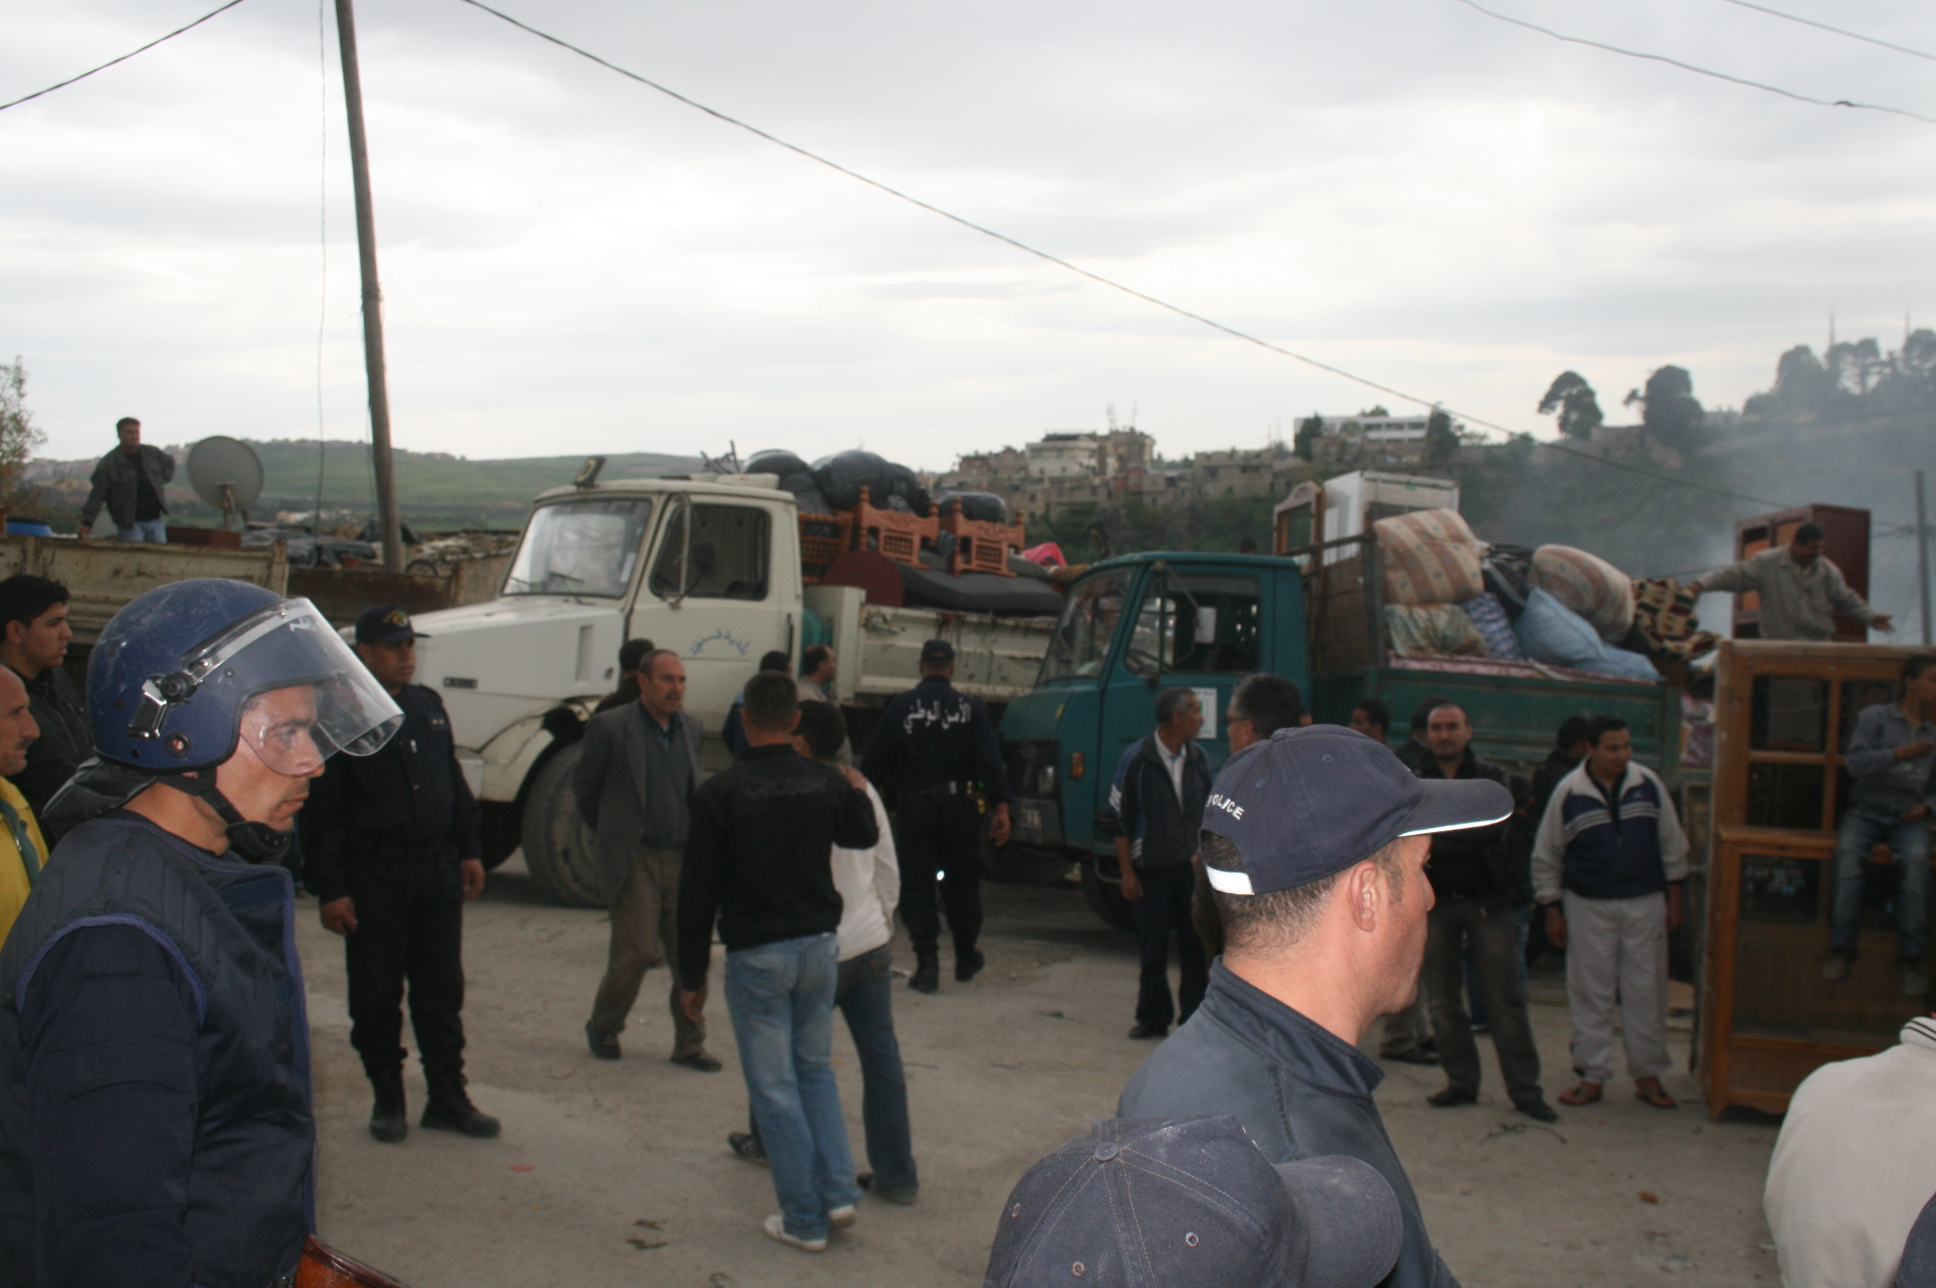 Algeria Sos Eviction Challenges The Authorities On